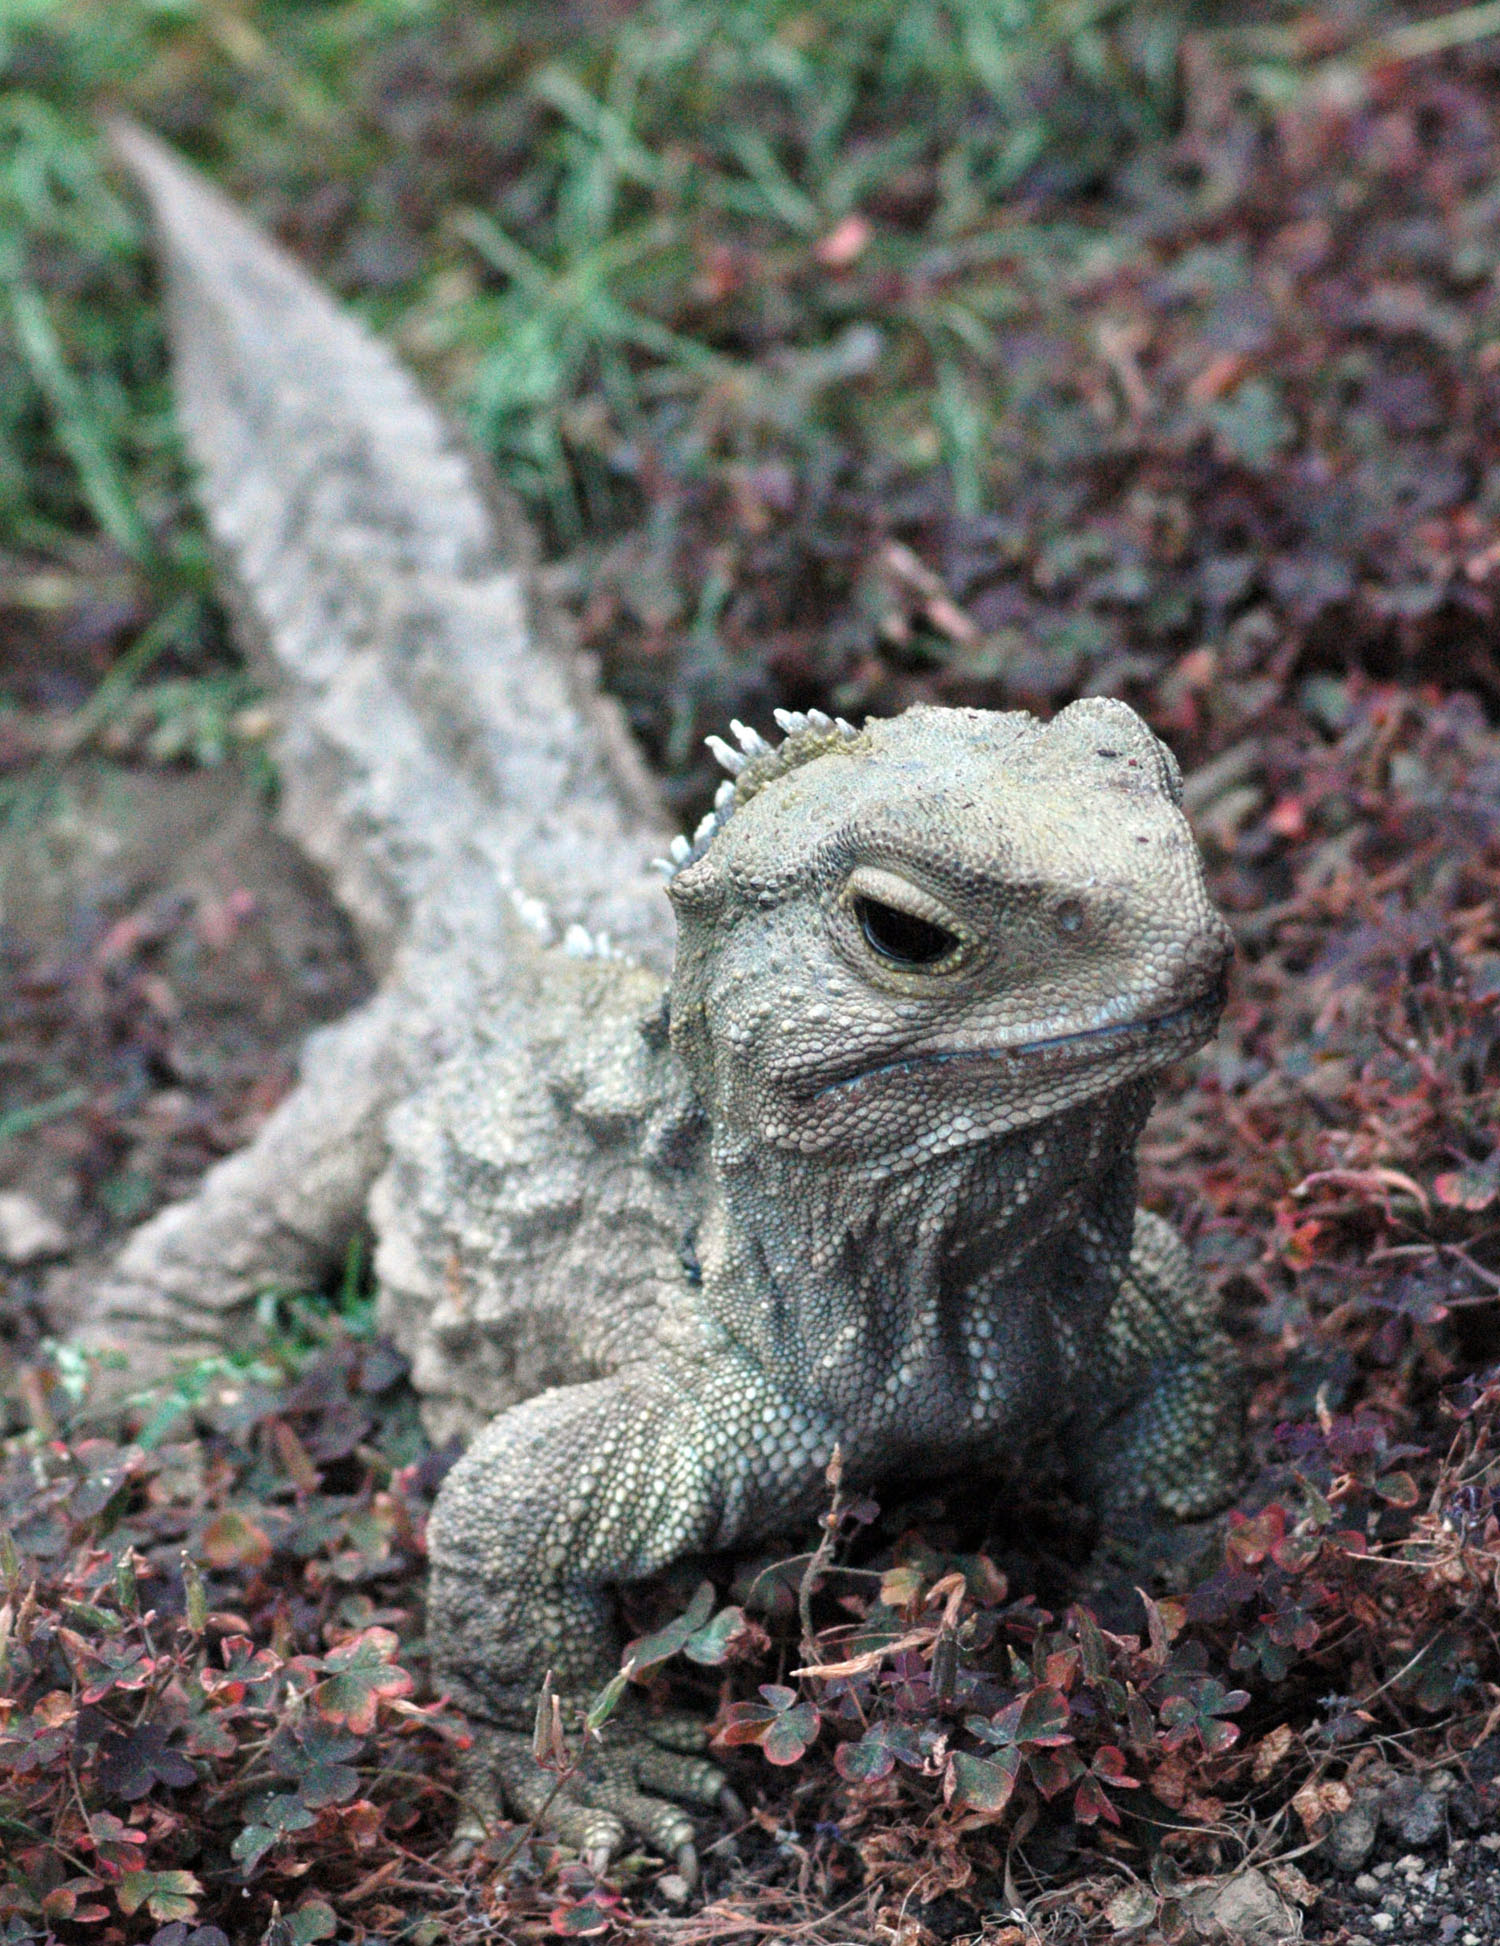 A male tuatara named Henry, living at the Southland Museum and Art Gallery, is still reproductively active at 111 years of age - from Wikimedia Commons